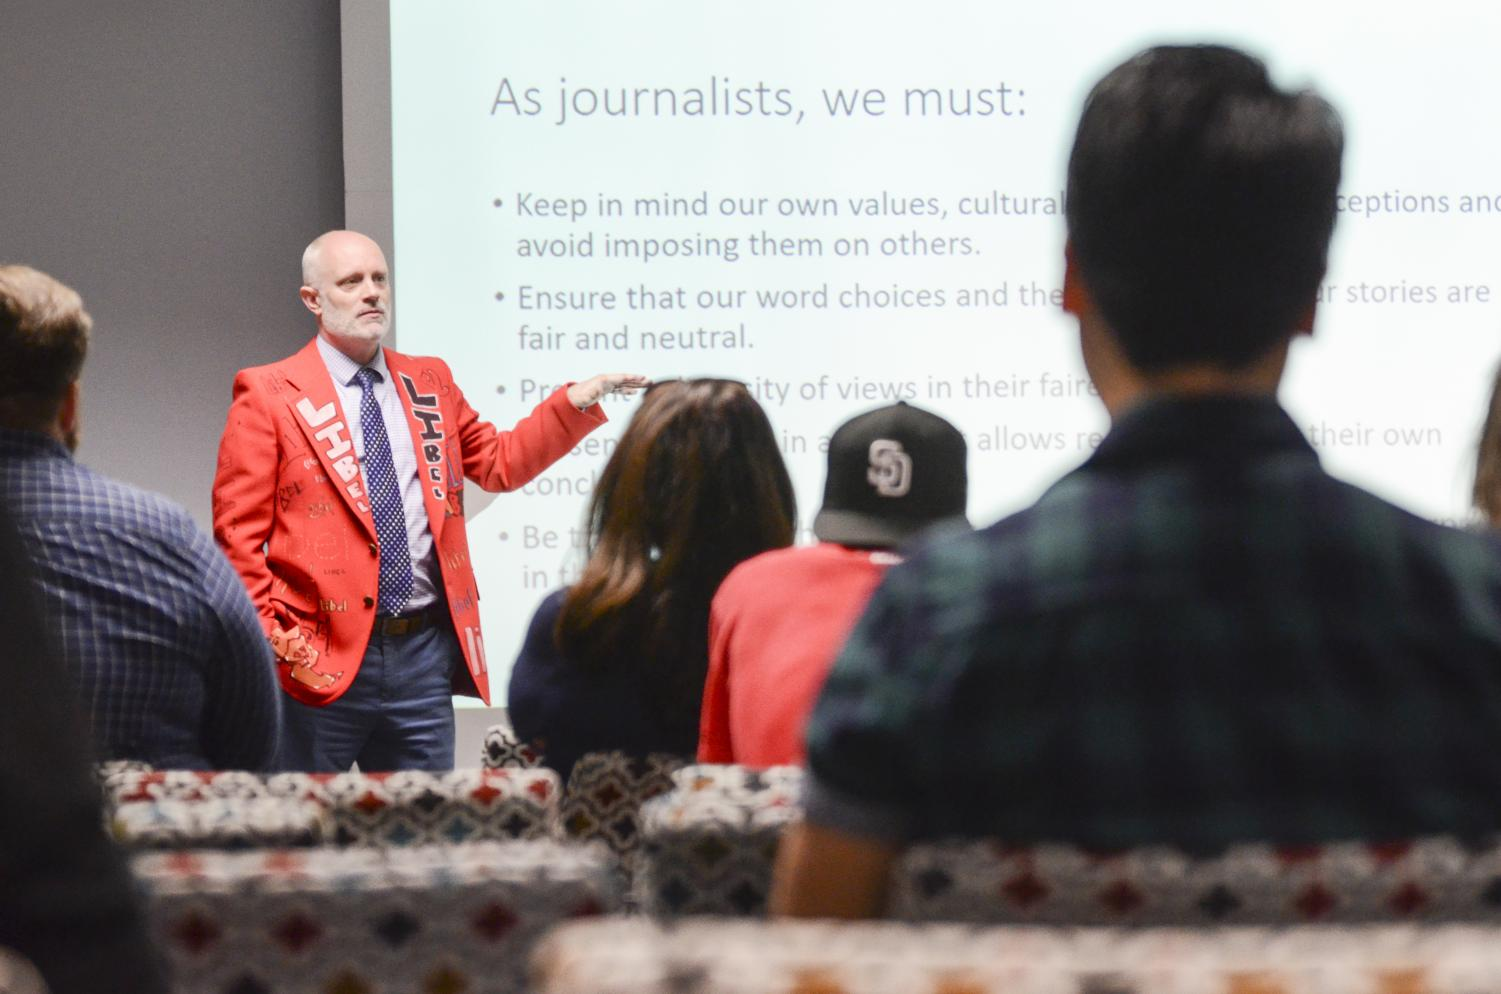 Matthew Hall providing students advice on how to detect fake news stories. Photo credit: San Diego Mesa College Office of Communications